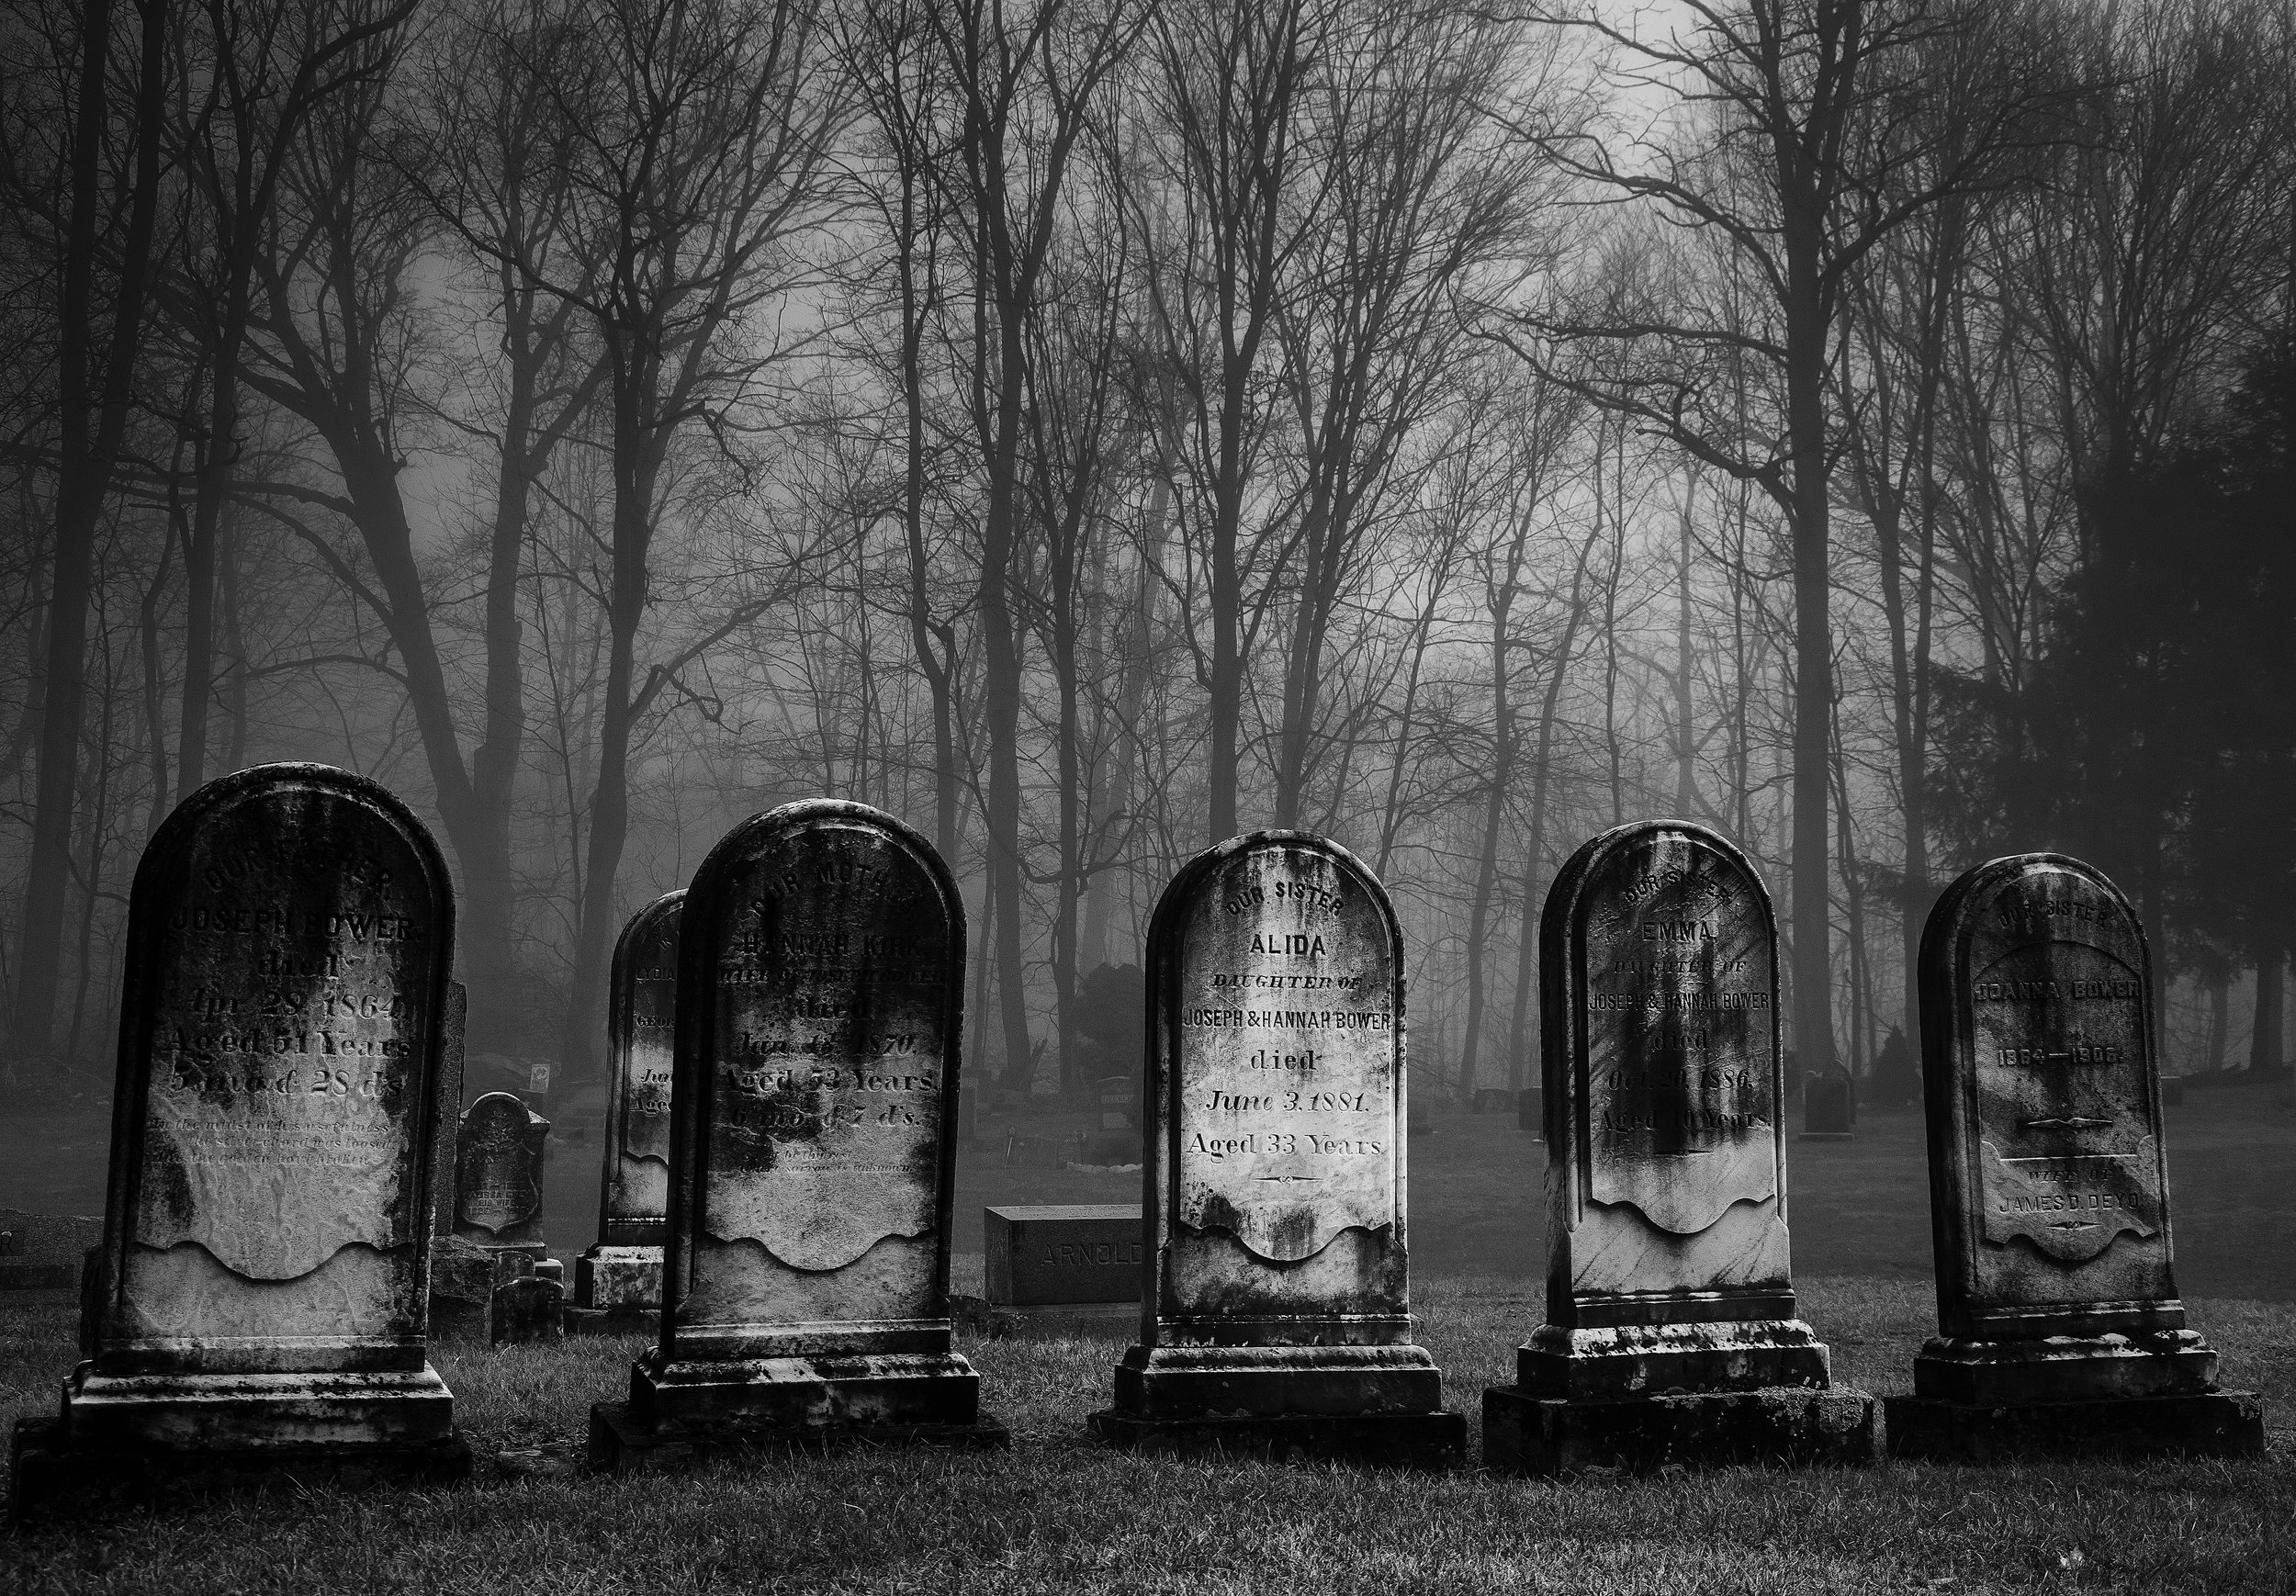 When I decided to go down the poet's walk, I purchased a thick used anthology of poetry. I started with the familiar names. I read Yeats, Wordsworth, Frost and Thomas, and Edgar Allen Poe. I was also inspired by a photograph that I shot on a wet, foggy morning. It's a black and white photo of a neat row of tombstones in a churchyard. One name was clearly visible on the center stone: Alida